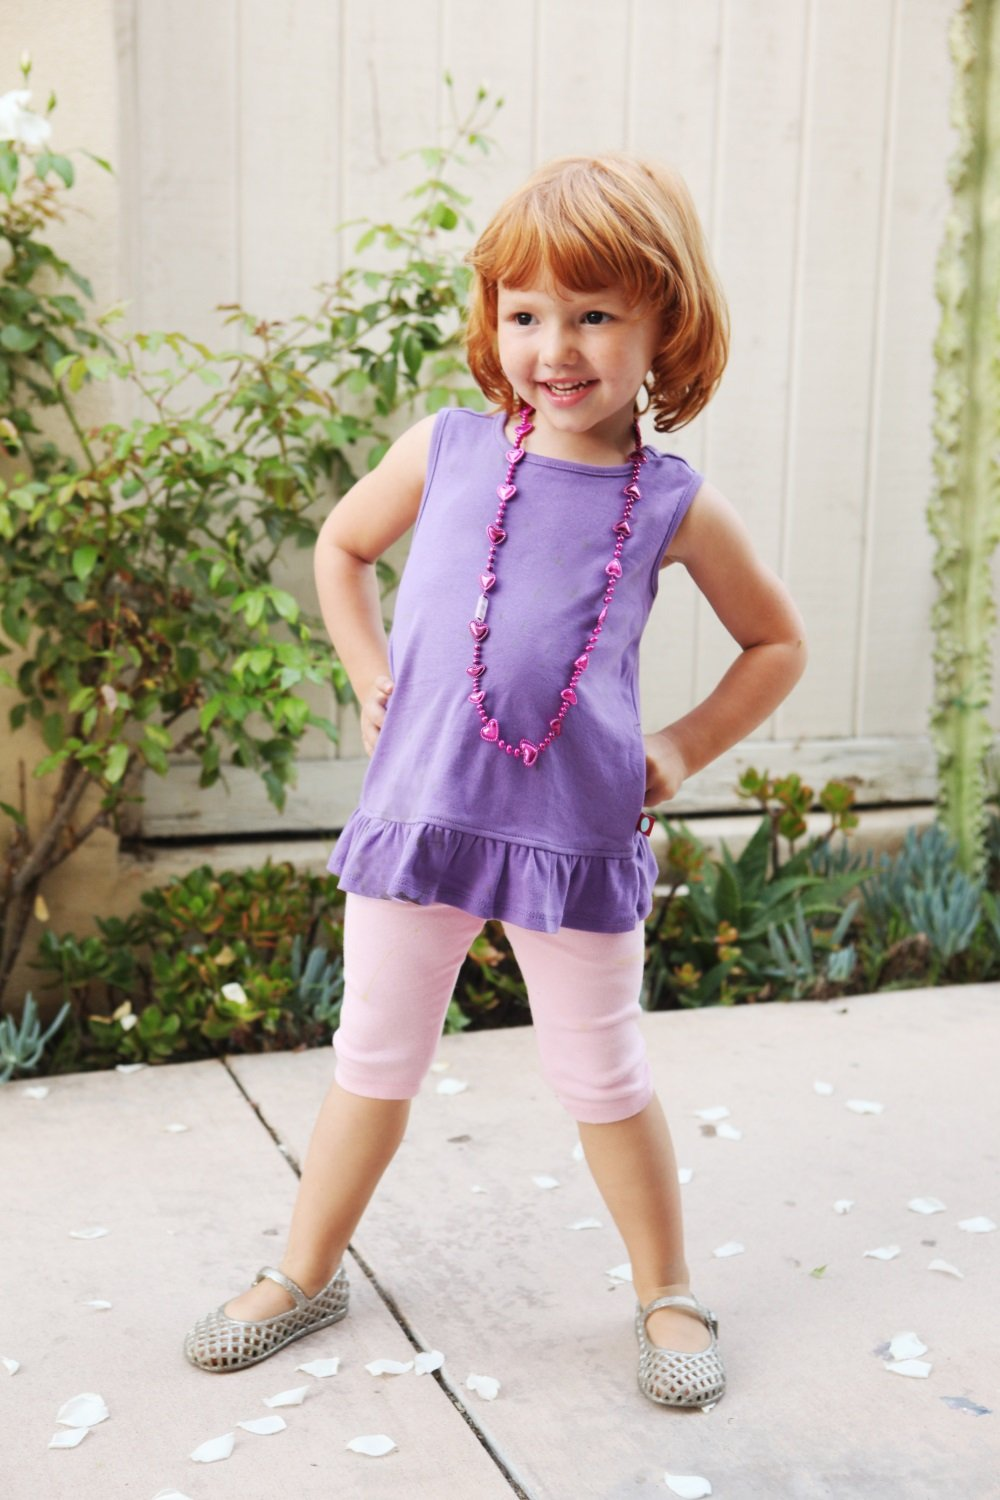 City Threads Little Girls' Cotton Cropped Capri Legging for Summer, Play and School, Medium Purple, 4T by City Threads (Image #2)